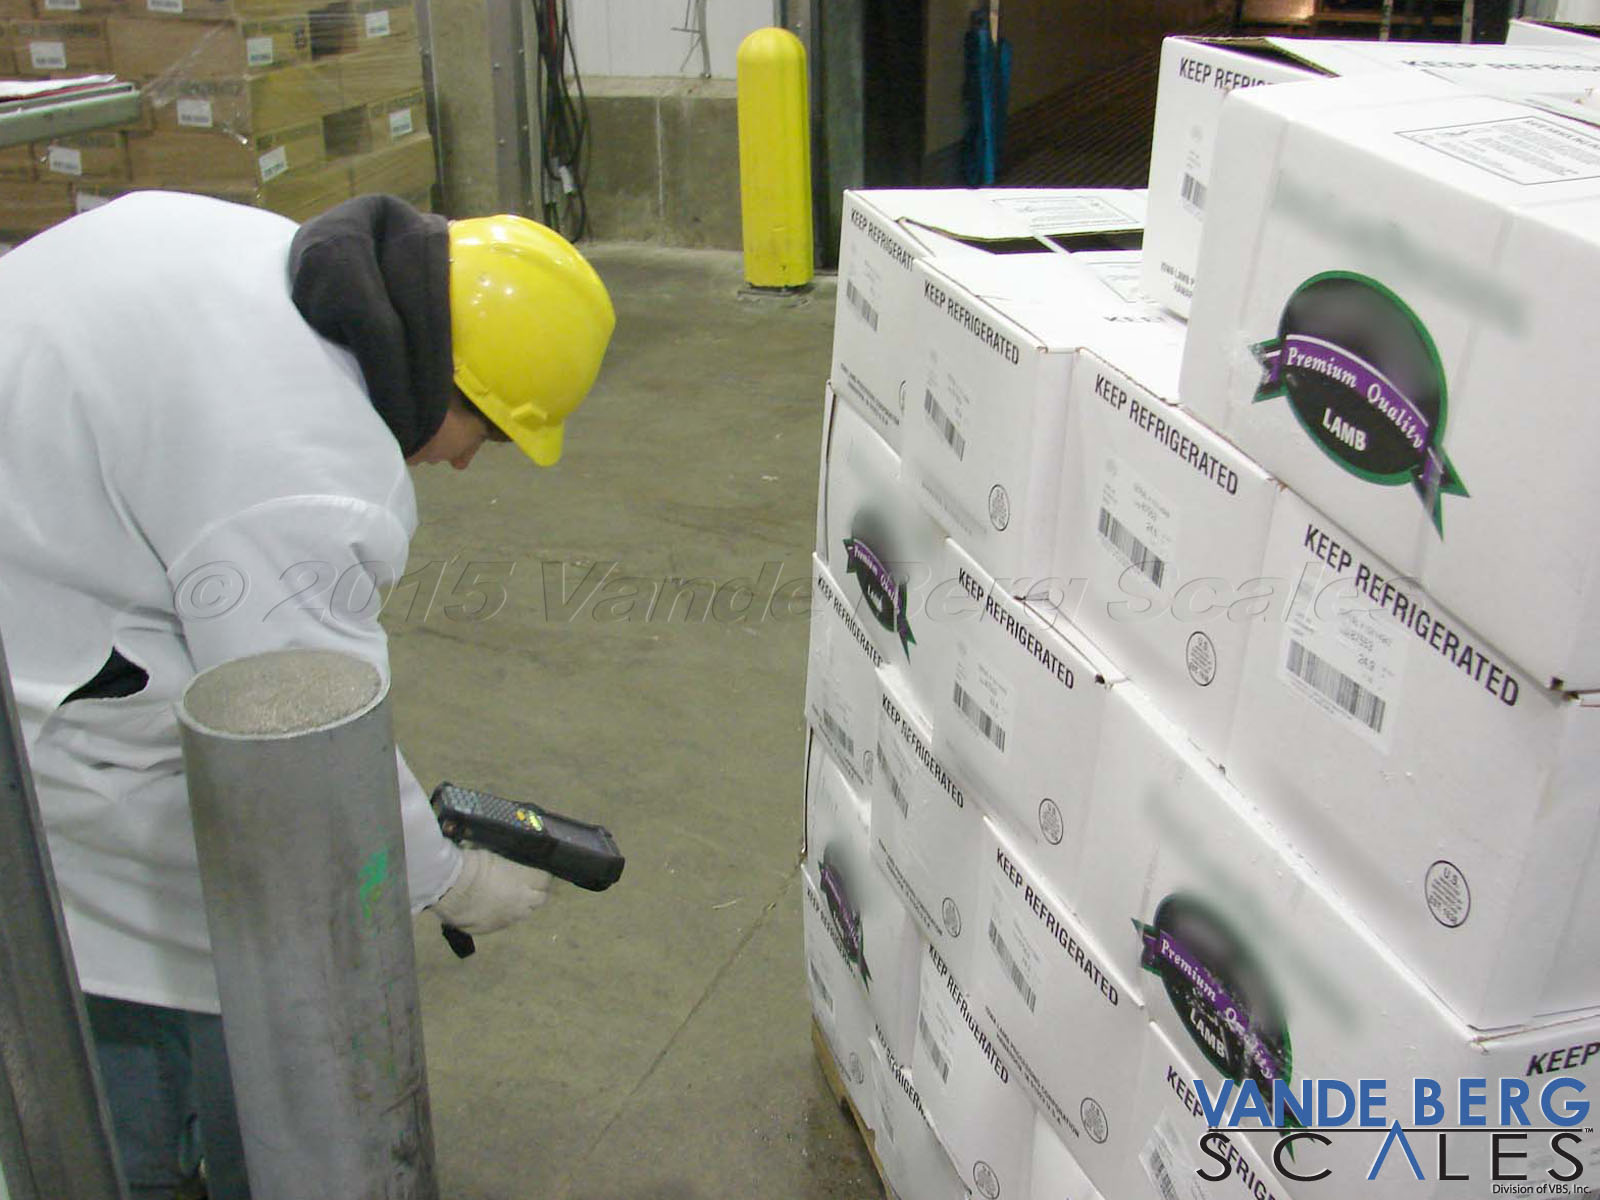 Operator scanning offal box barcodes